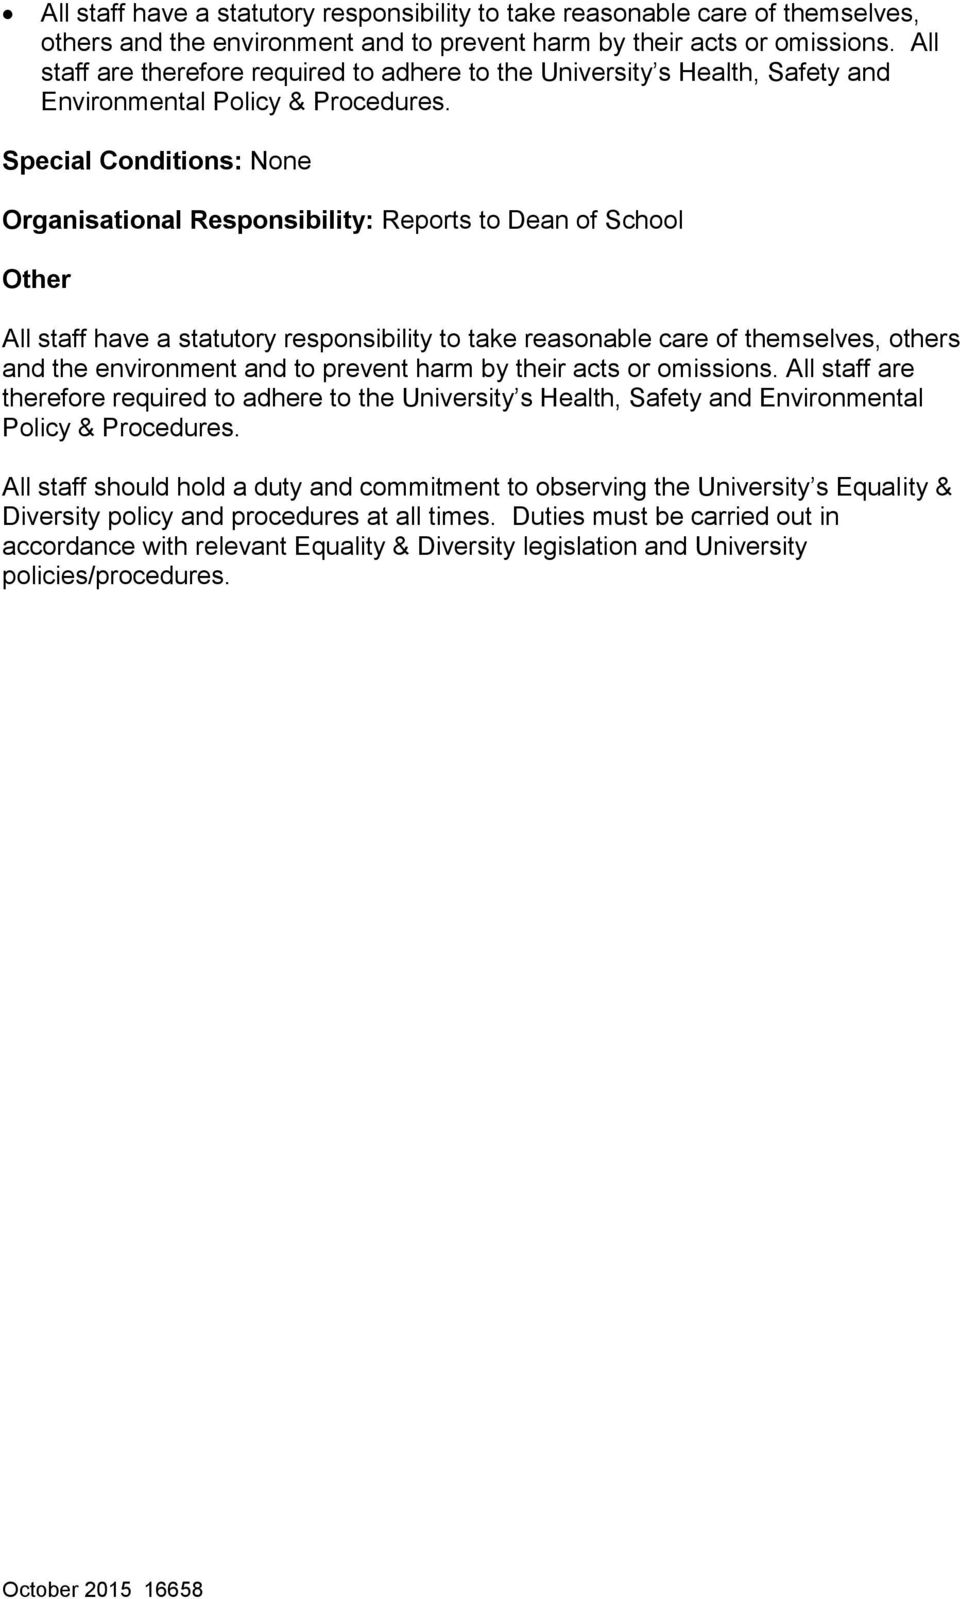 Special Conditions: None Organisational Responsibility: Reports to Dean of School Other   All staff should hold a duty and commitment to observing the University s Equality & Diversity policy and